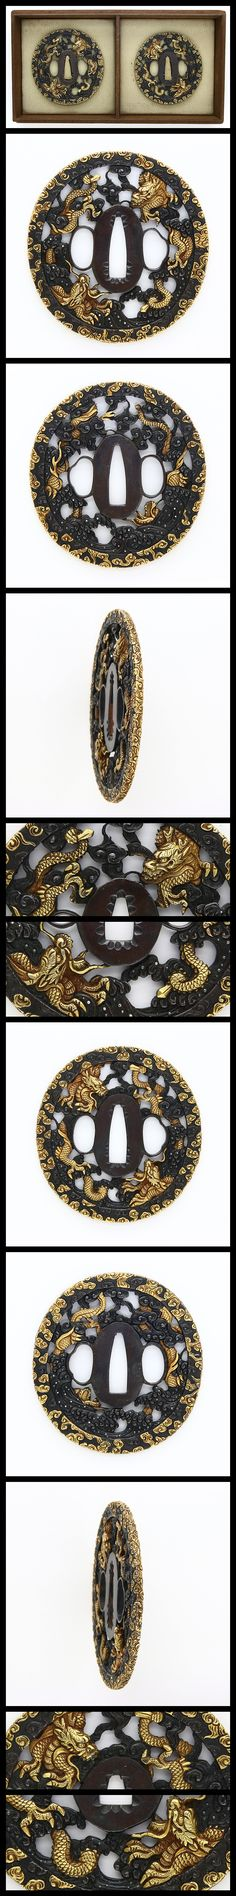 Shakudo Tsuba, clouds, waves and dragon are engraved with gold color.